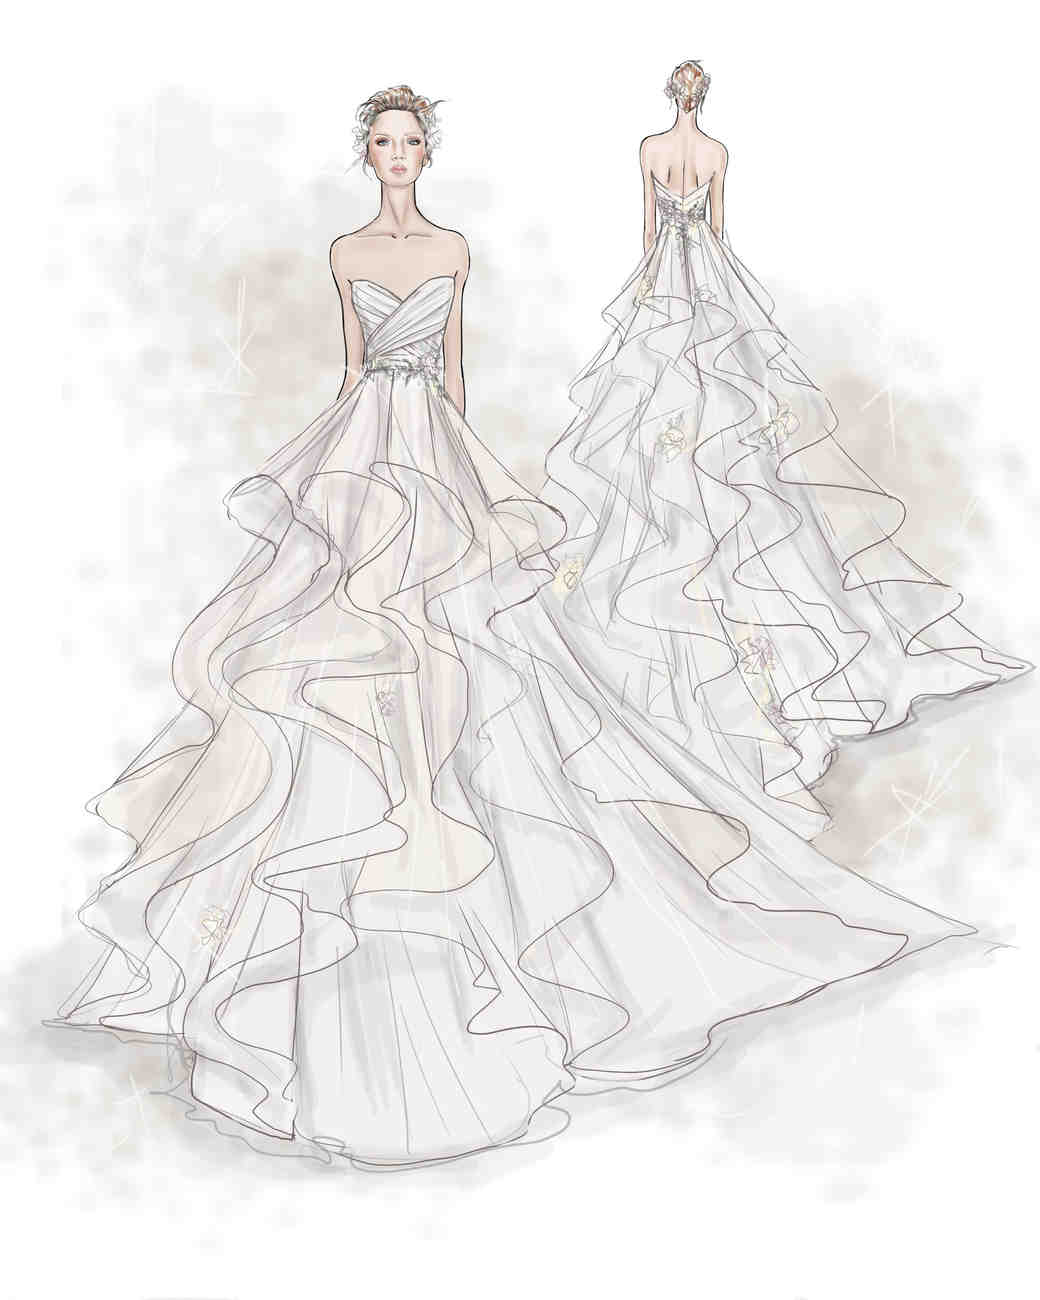 Spring 2018 BFW Sketches Watters